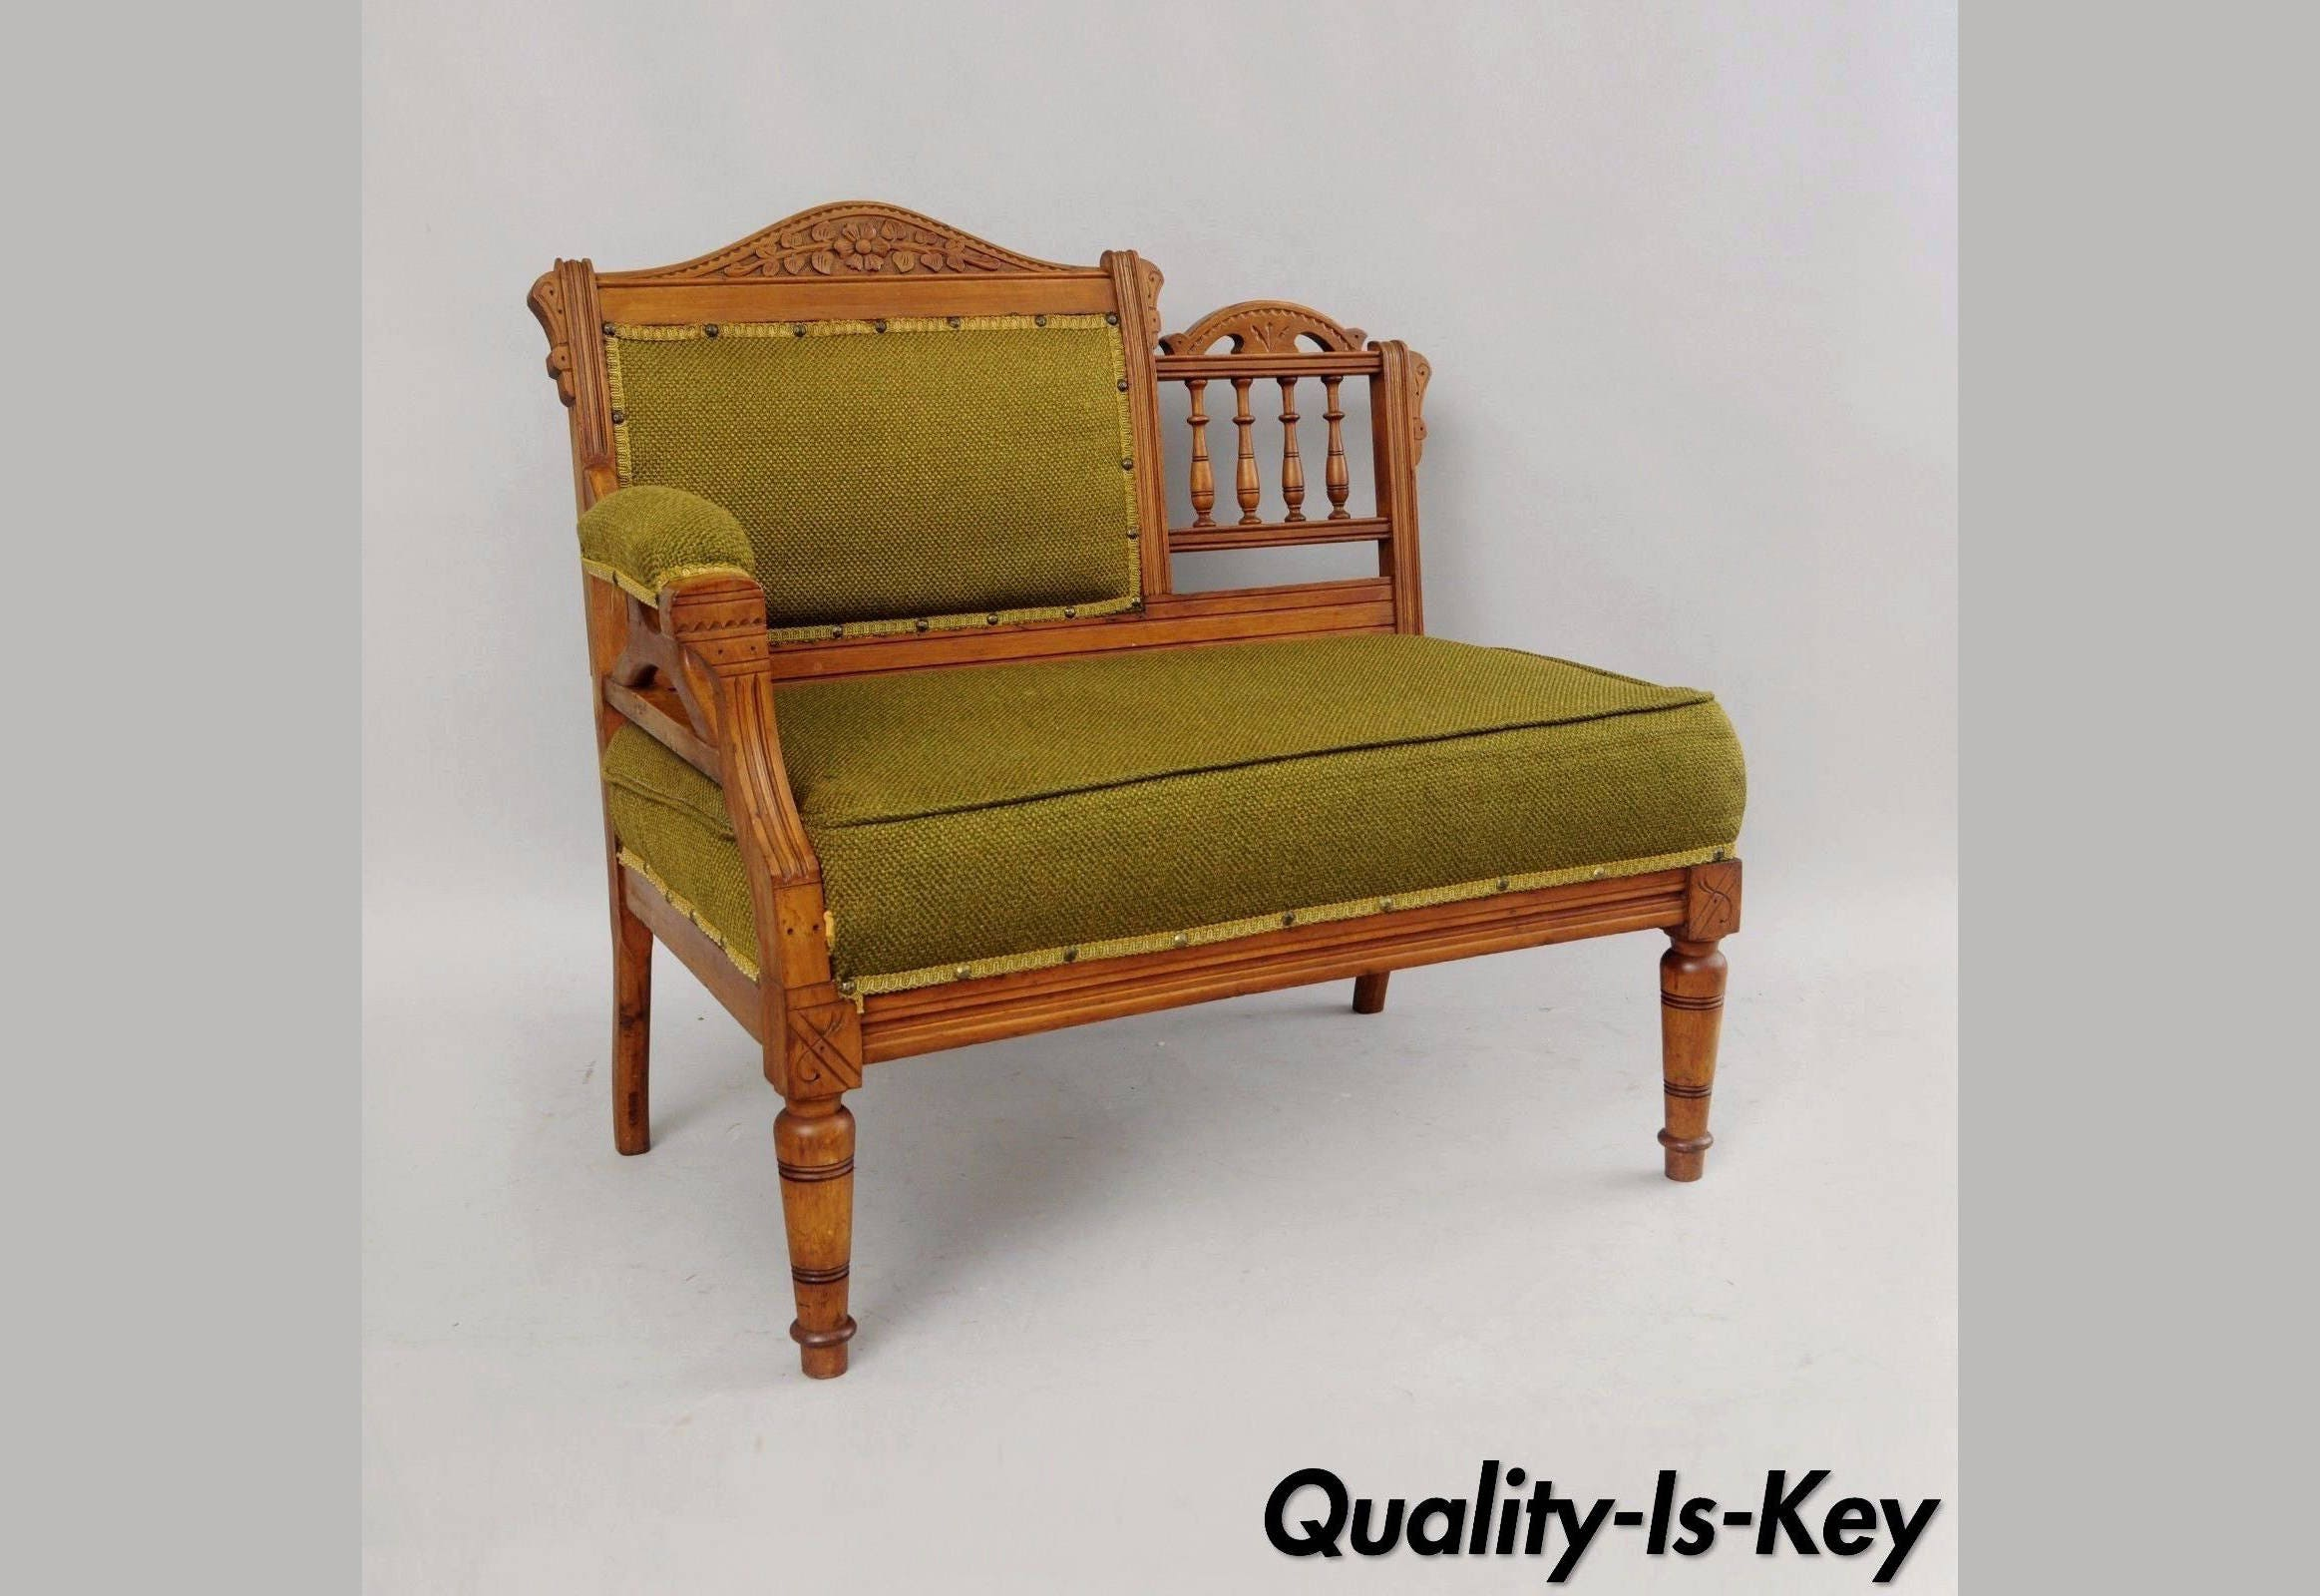 Antique victorian parlor chairs - Antique Eastlake Victorian Carved Walnut Gossip Bench Bustle Parlor Chair Settee